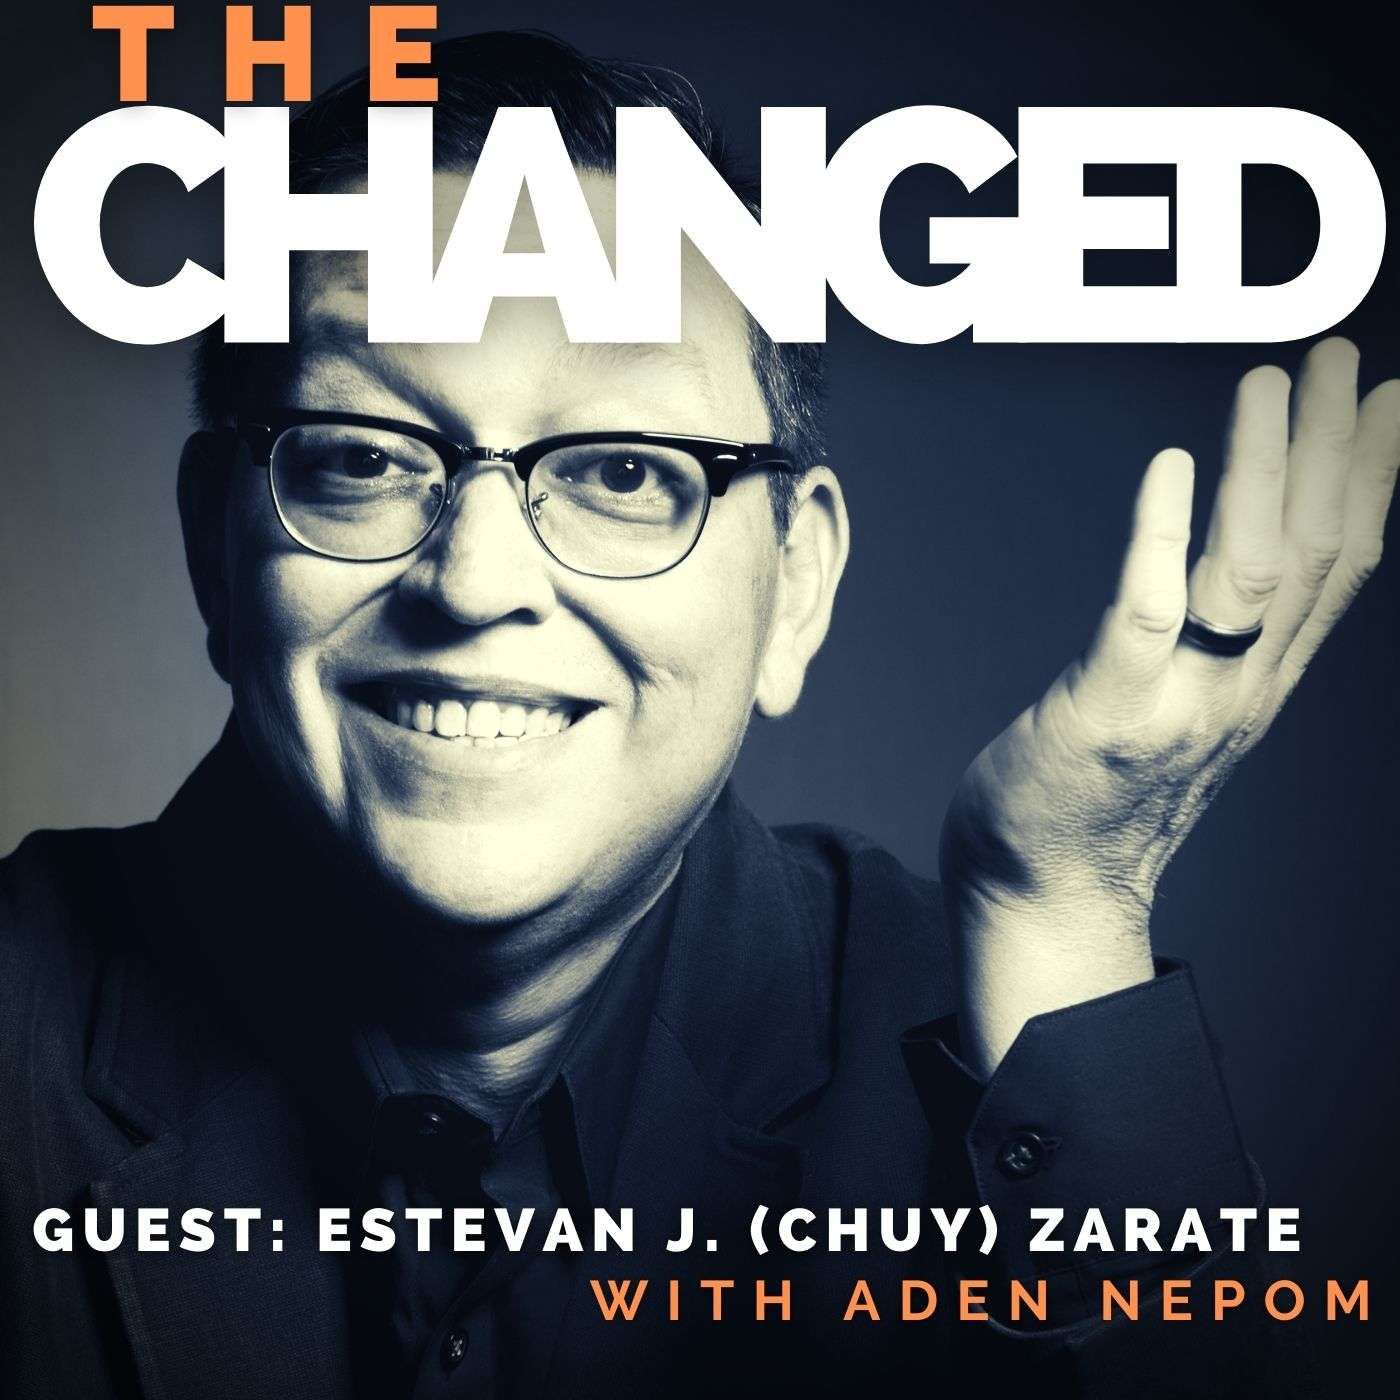 Episode 23: Estevan J Zarate (Chuy) and the diagnosis that changed everything